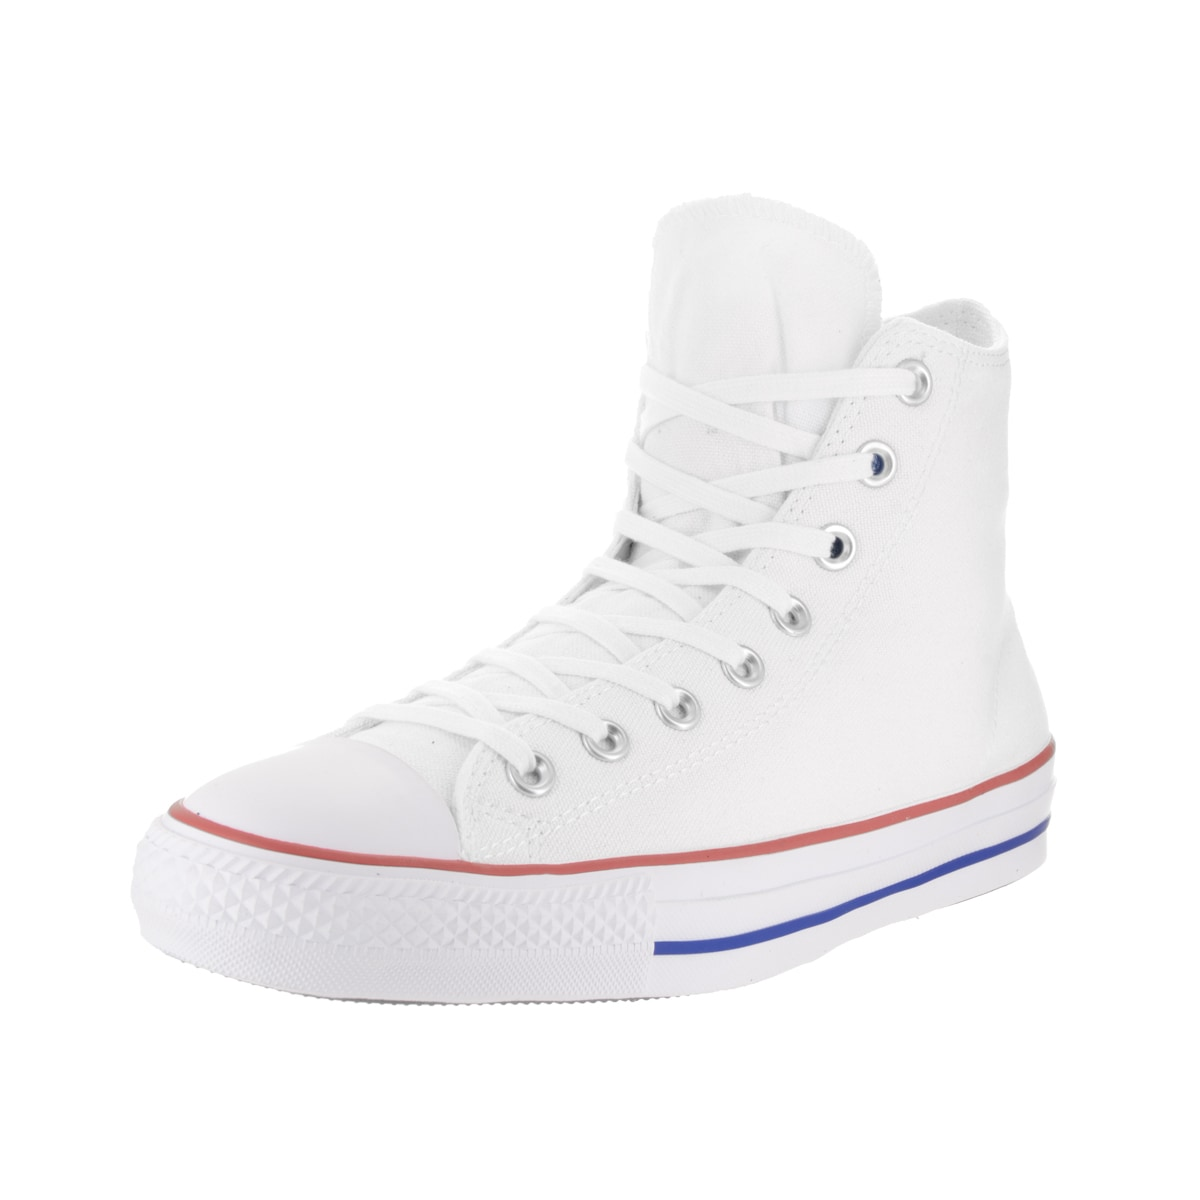 93df7728ace5cf Converse Unisex Chuck Taylor All Star Pro Hi Skate Shoe